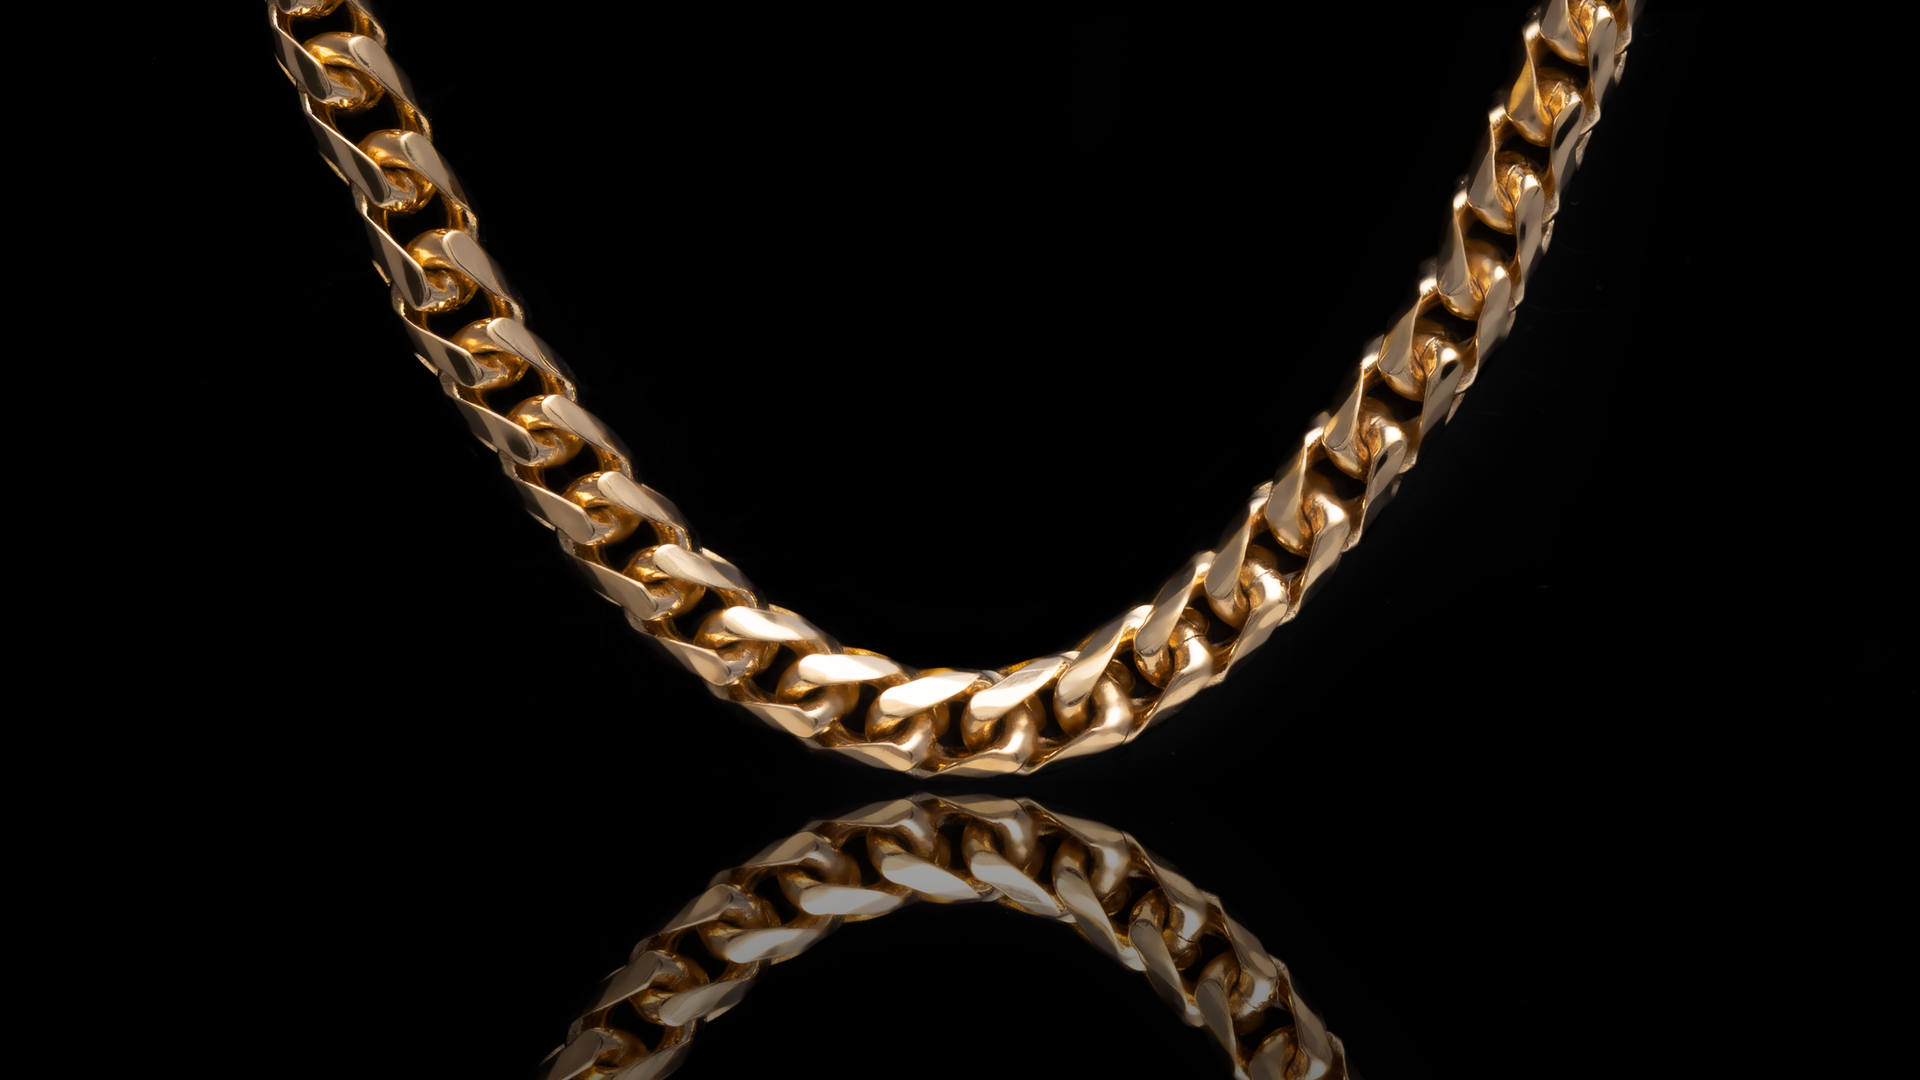 18K Yellow Gold Basra Link Chain